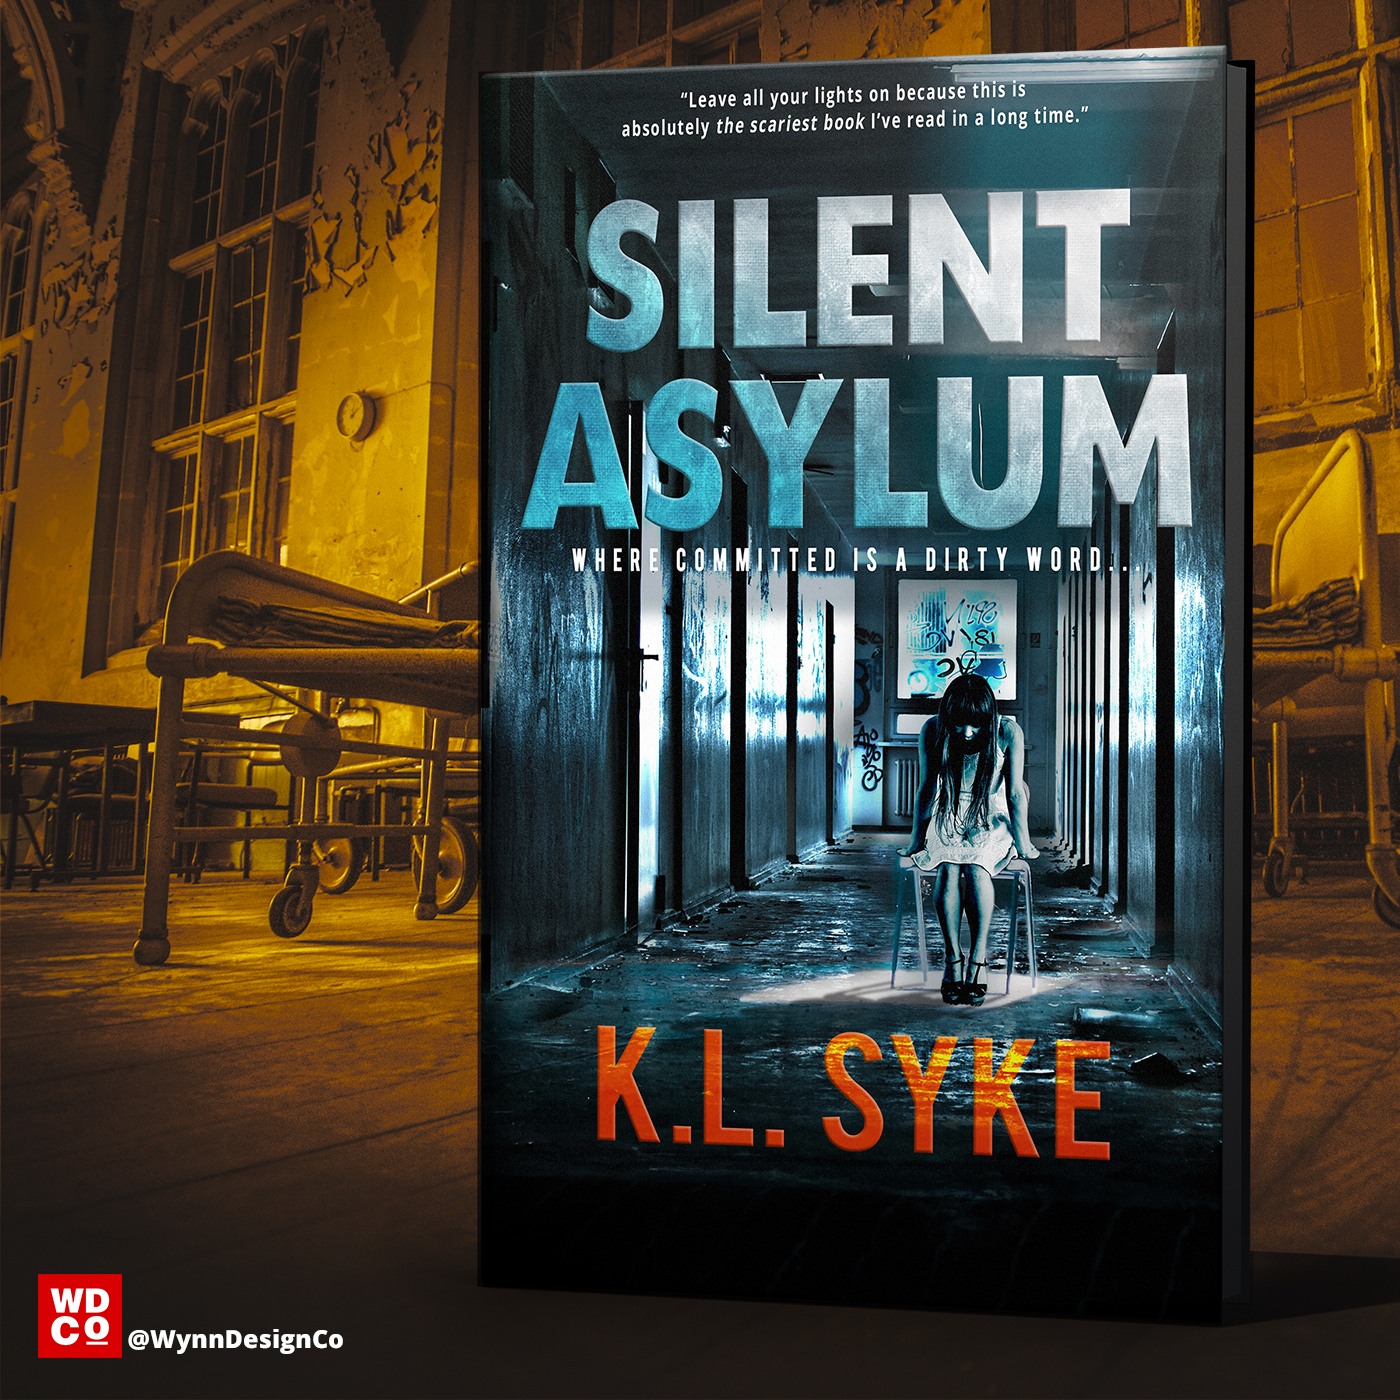 Book Cover Design - Silent Asylum - Wynn